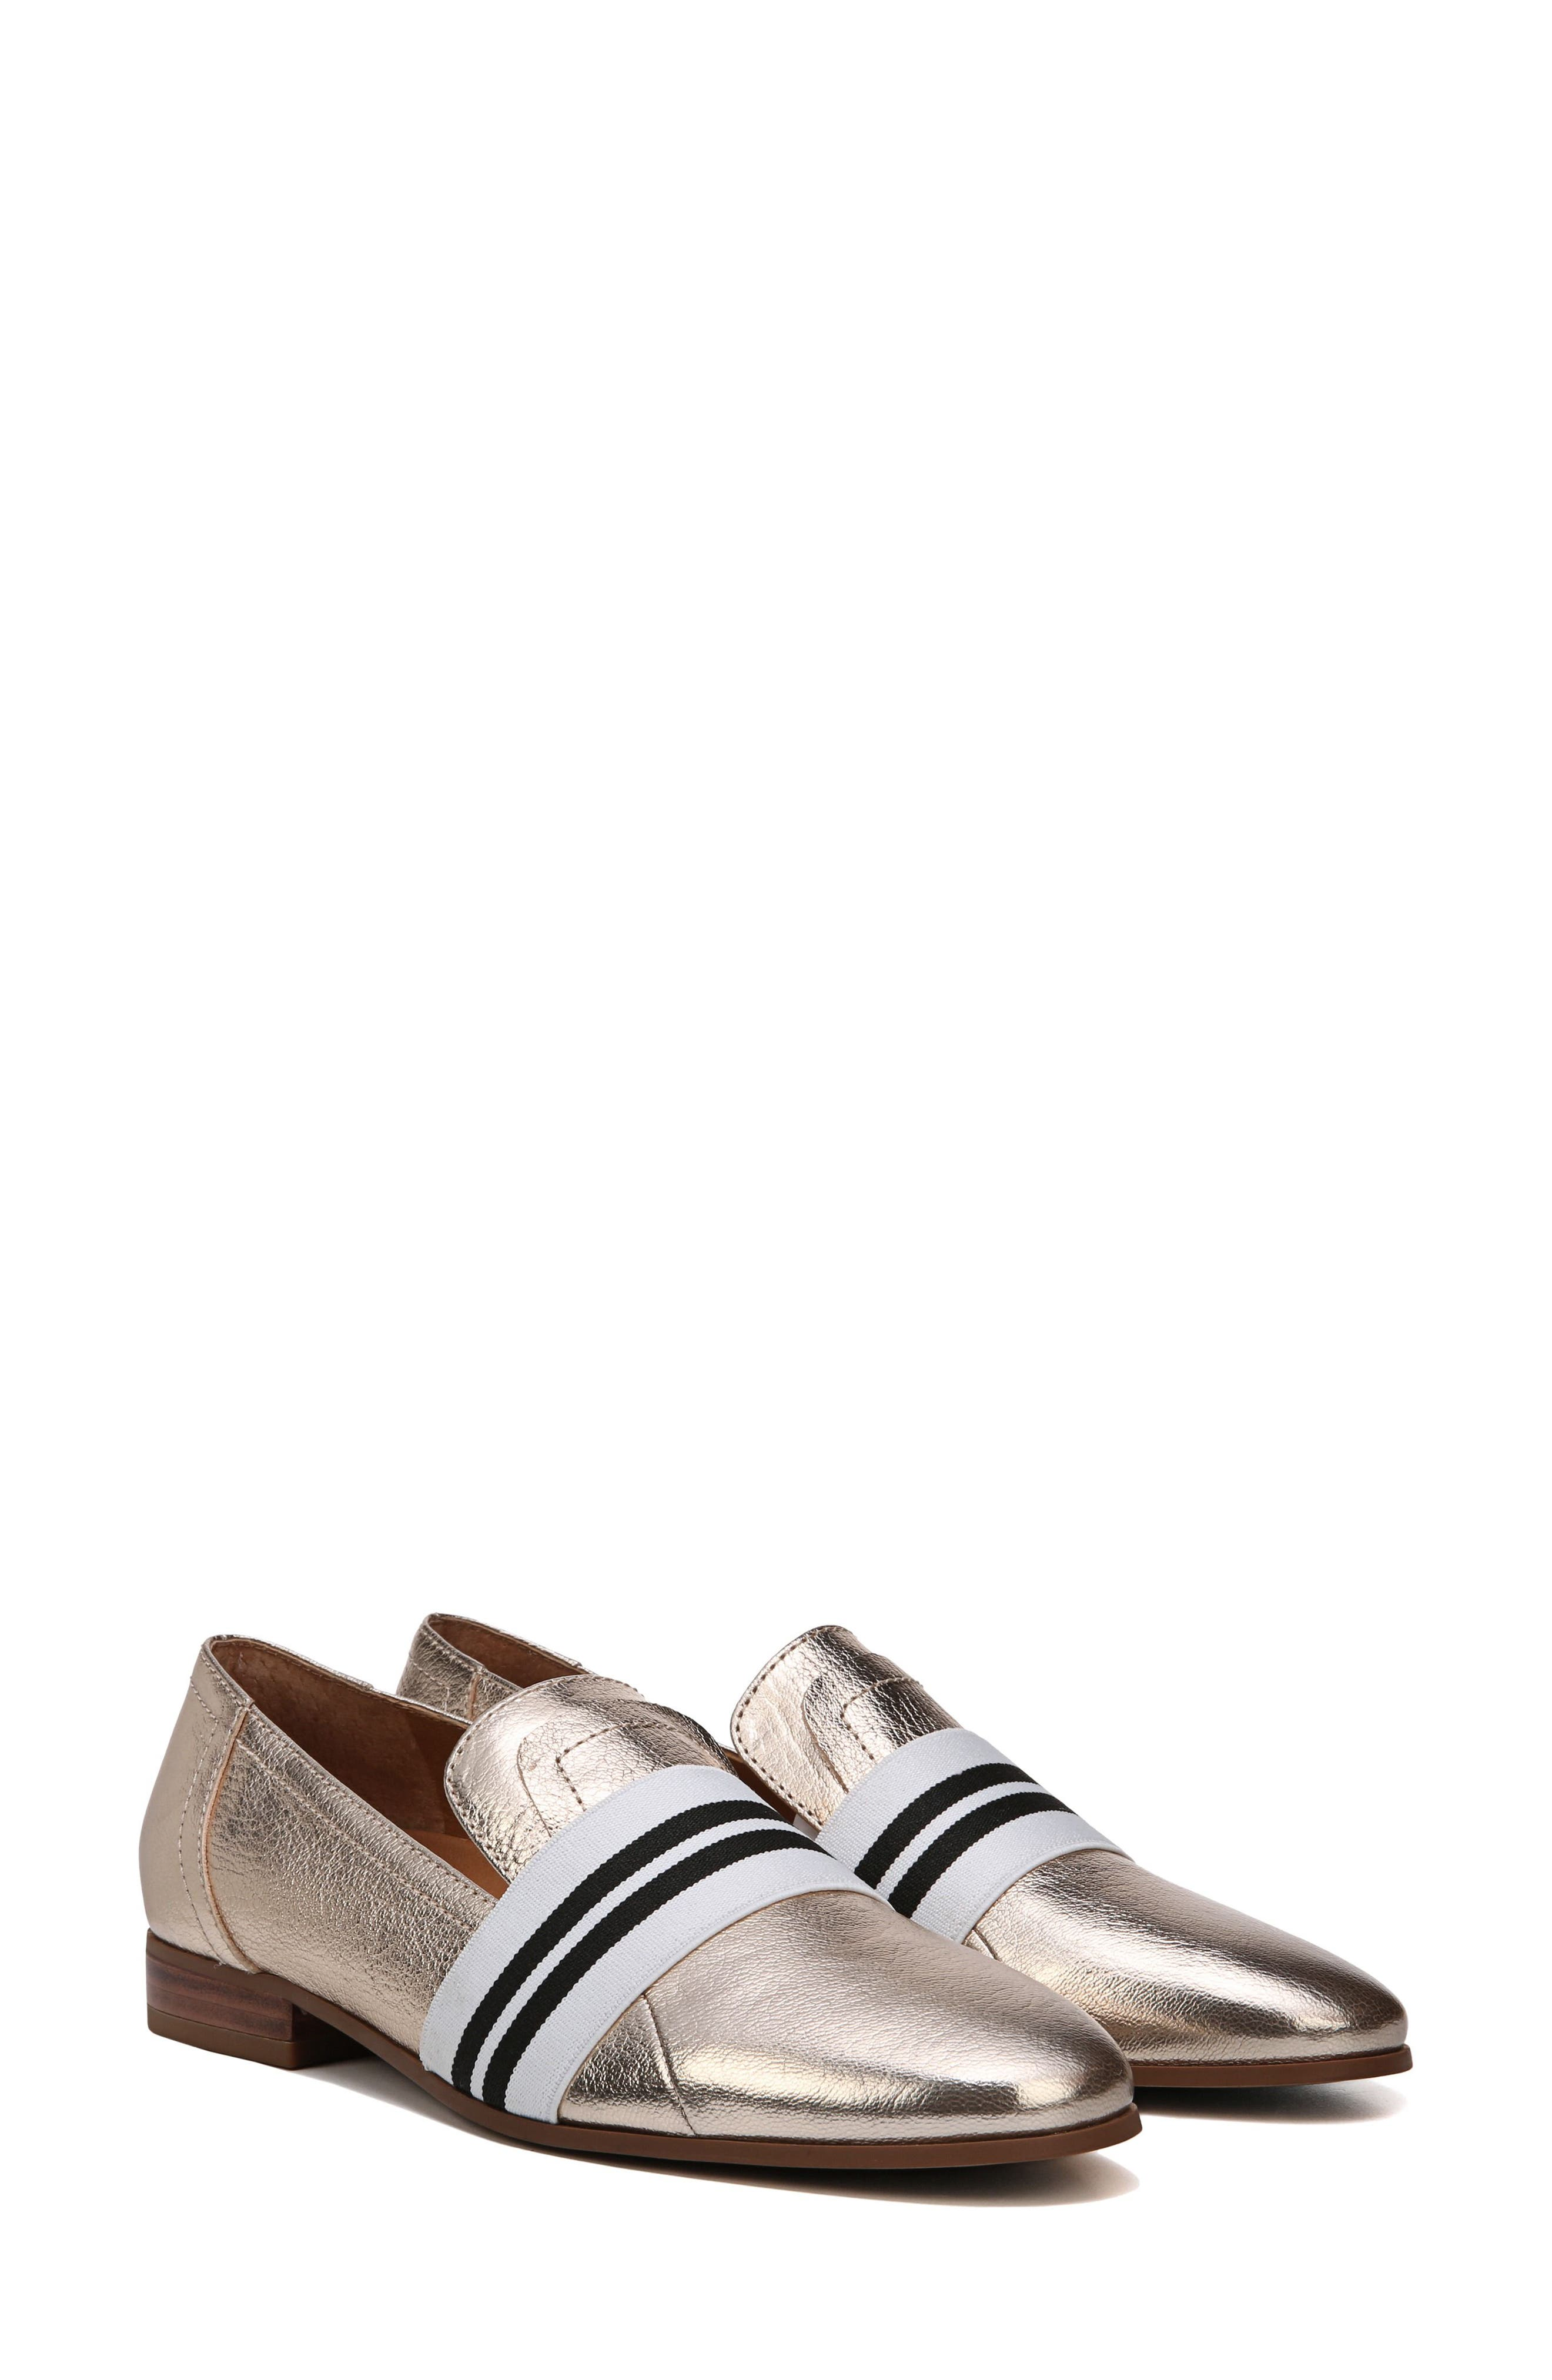 Odyssey Loafer,                             Alternate thumbnail 8, color,                             PLATINO LEATHER